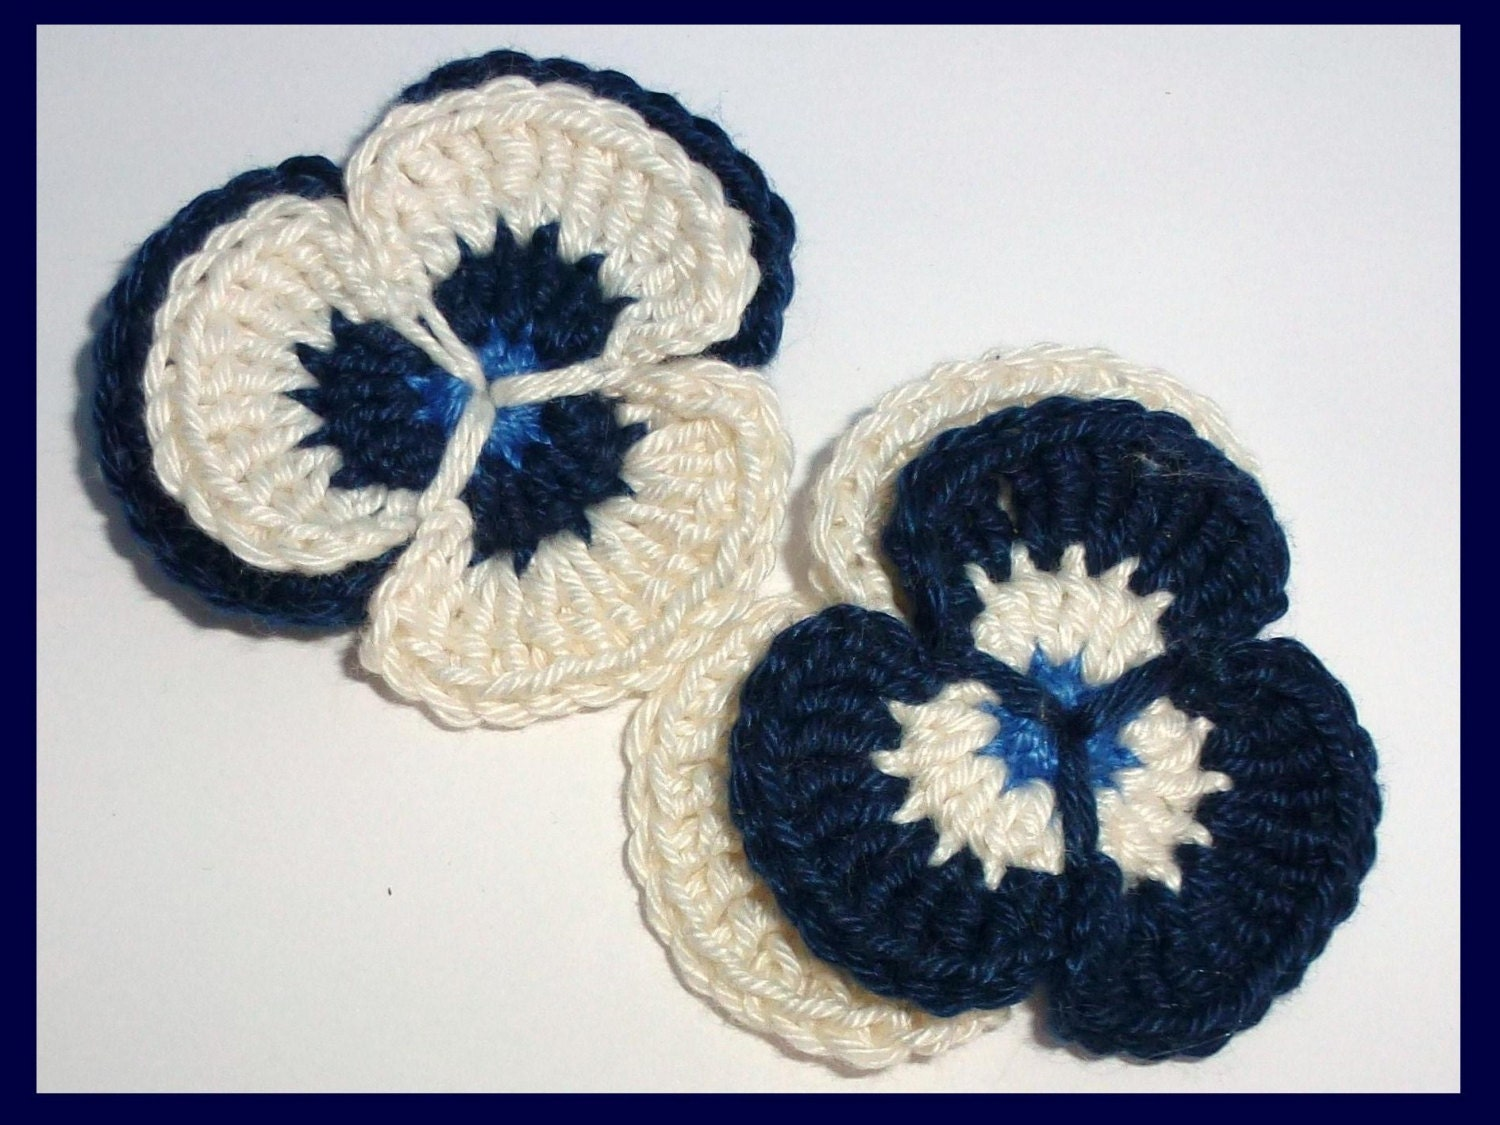 Crochet applique, 2 crochet pansies, cards, scrapbooks, appliques and embellishments